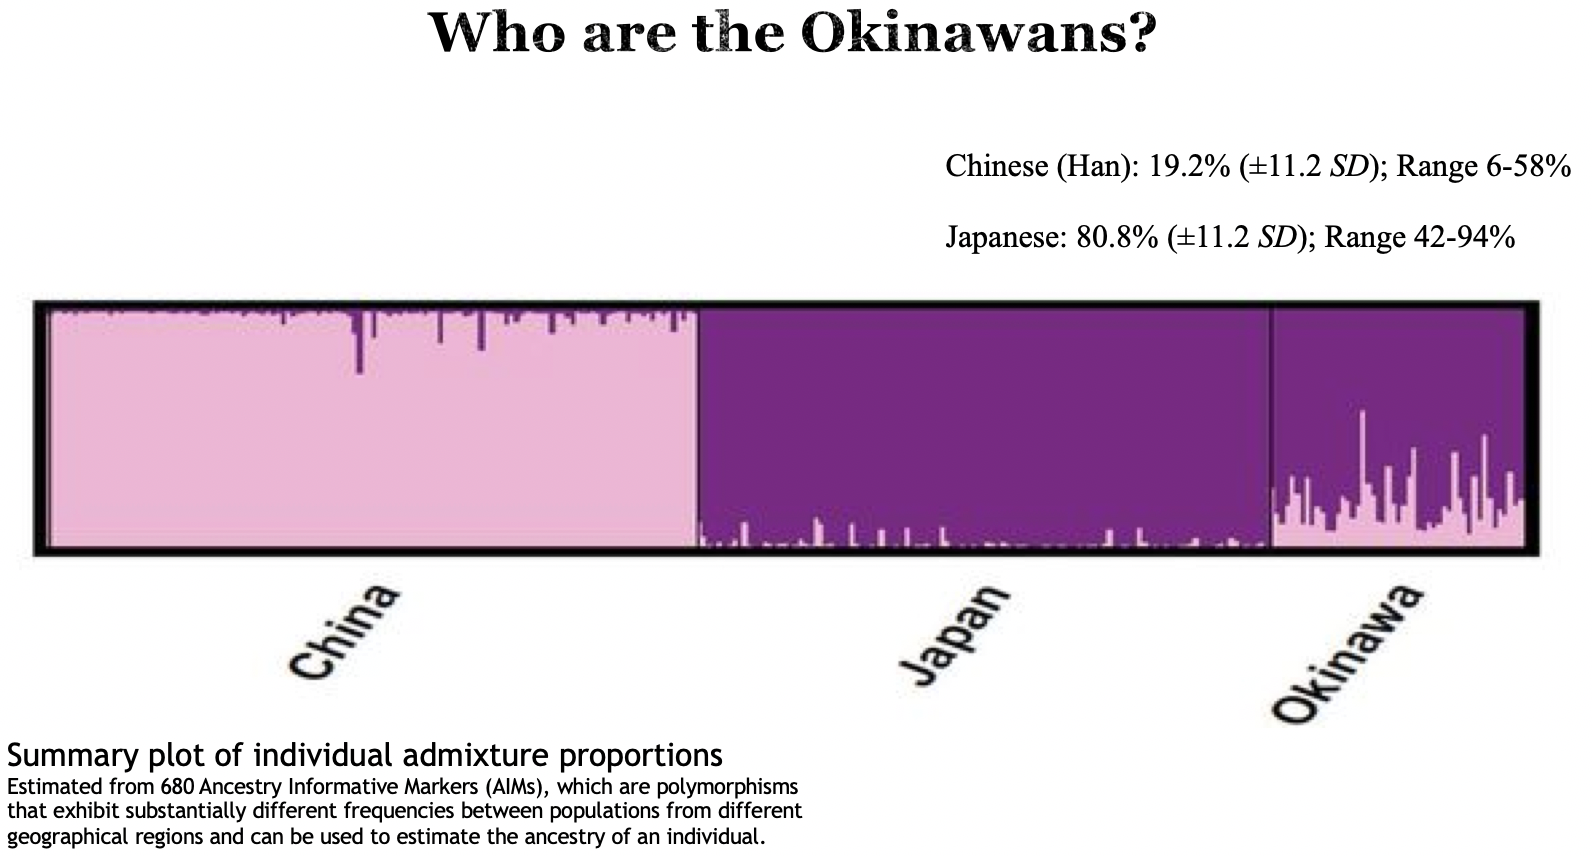 A pilot genome-wide association study (GWAS) investigated characteristics of the Okinawan genome. When compared to other ethnic populations in human genetic databases, analysis showed that Okinawans cluster strongly with East Asians with little outside mixture (Bendjilali et al. 2014). These data support the hypothesis that Okinawans, while related to Japanese and Chinese are also genetically distinct.